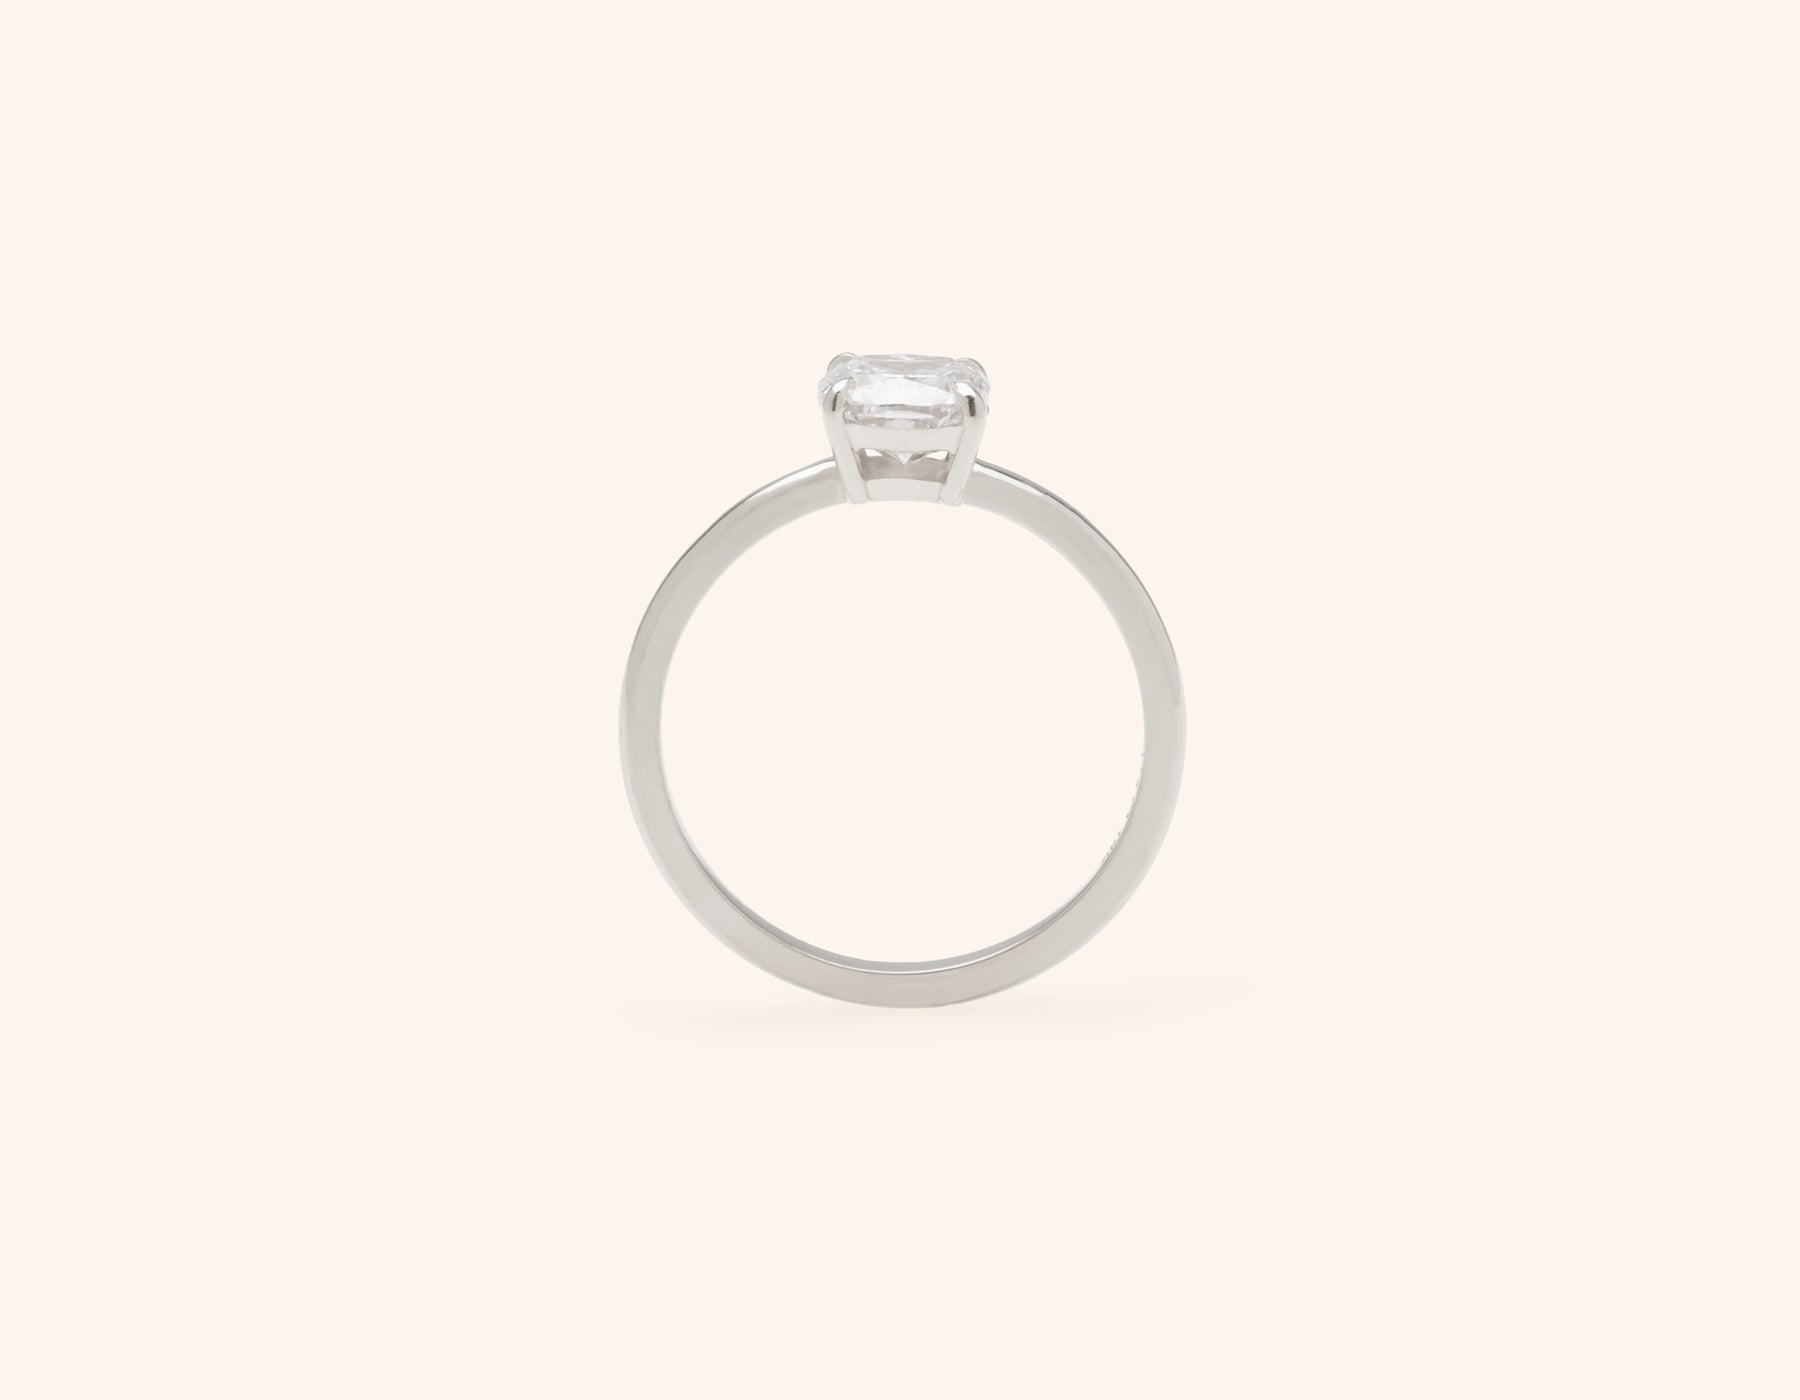 Vrai & Oro platinum Diamond engagement ring The Cushion simple classic band